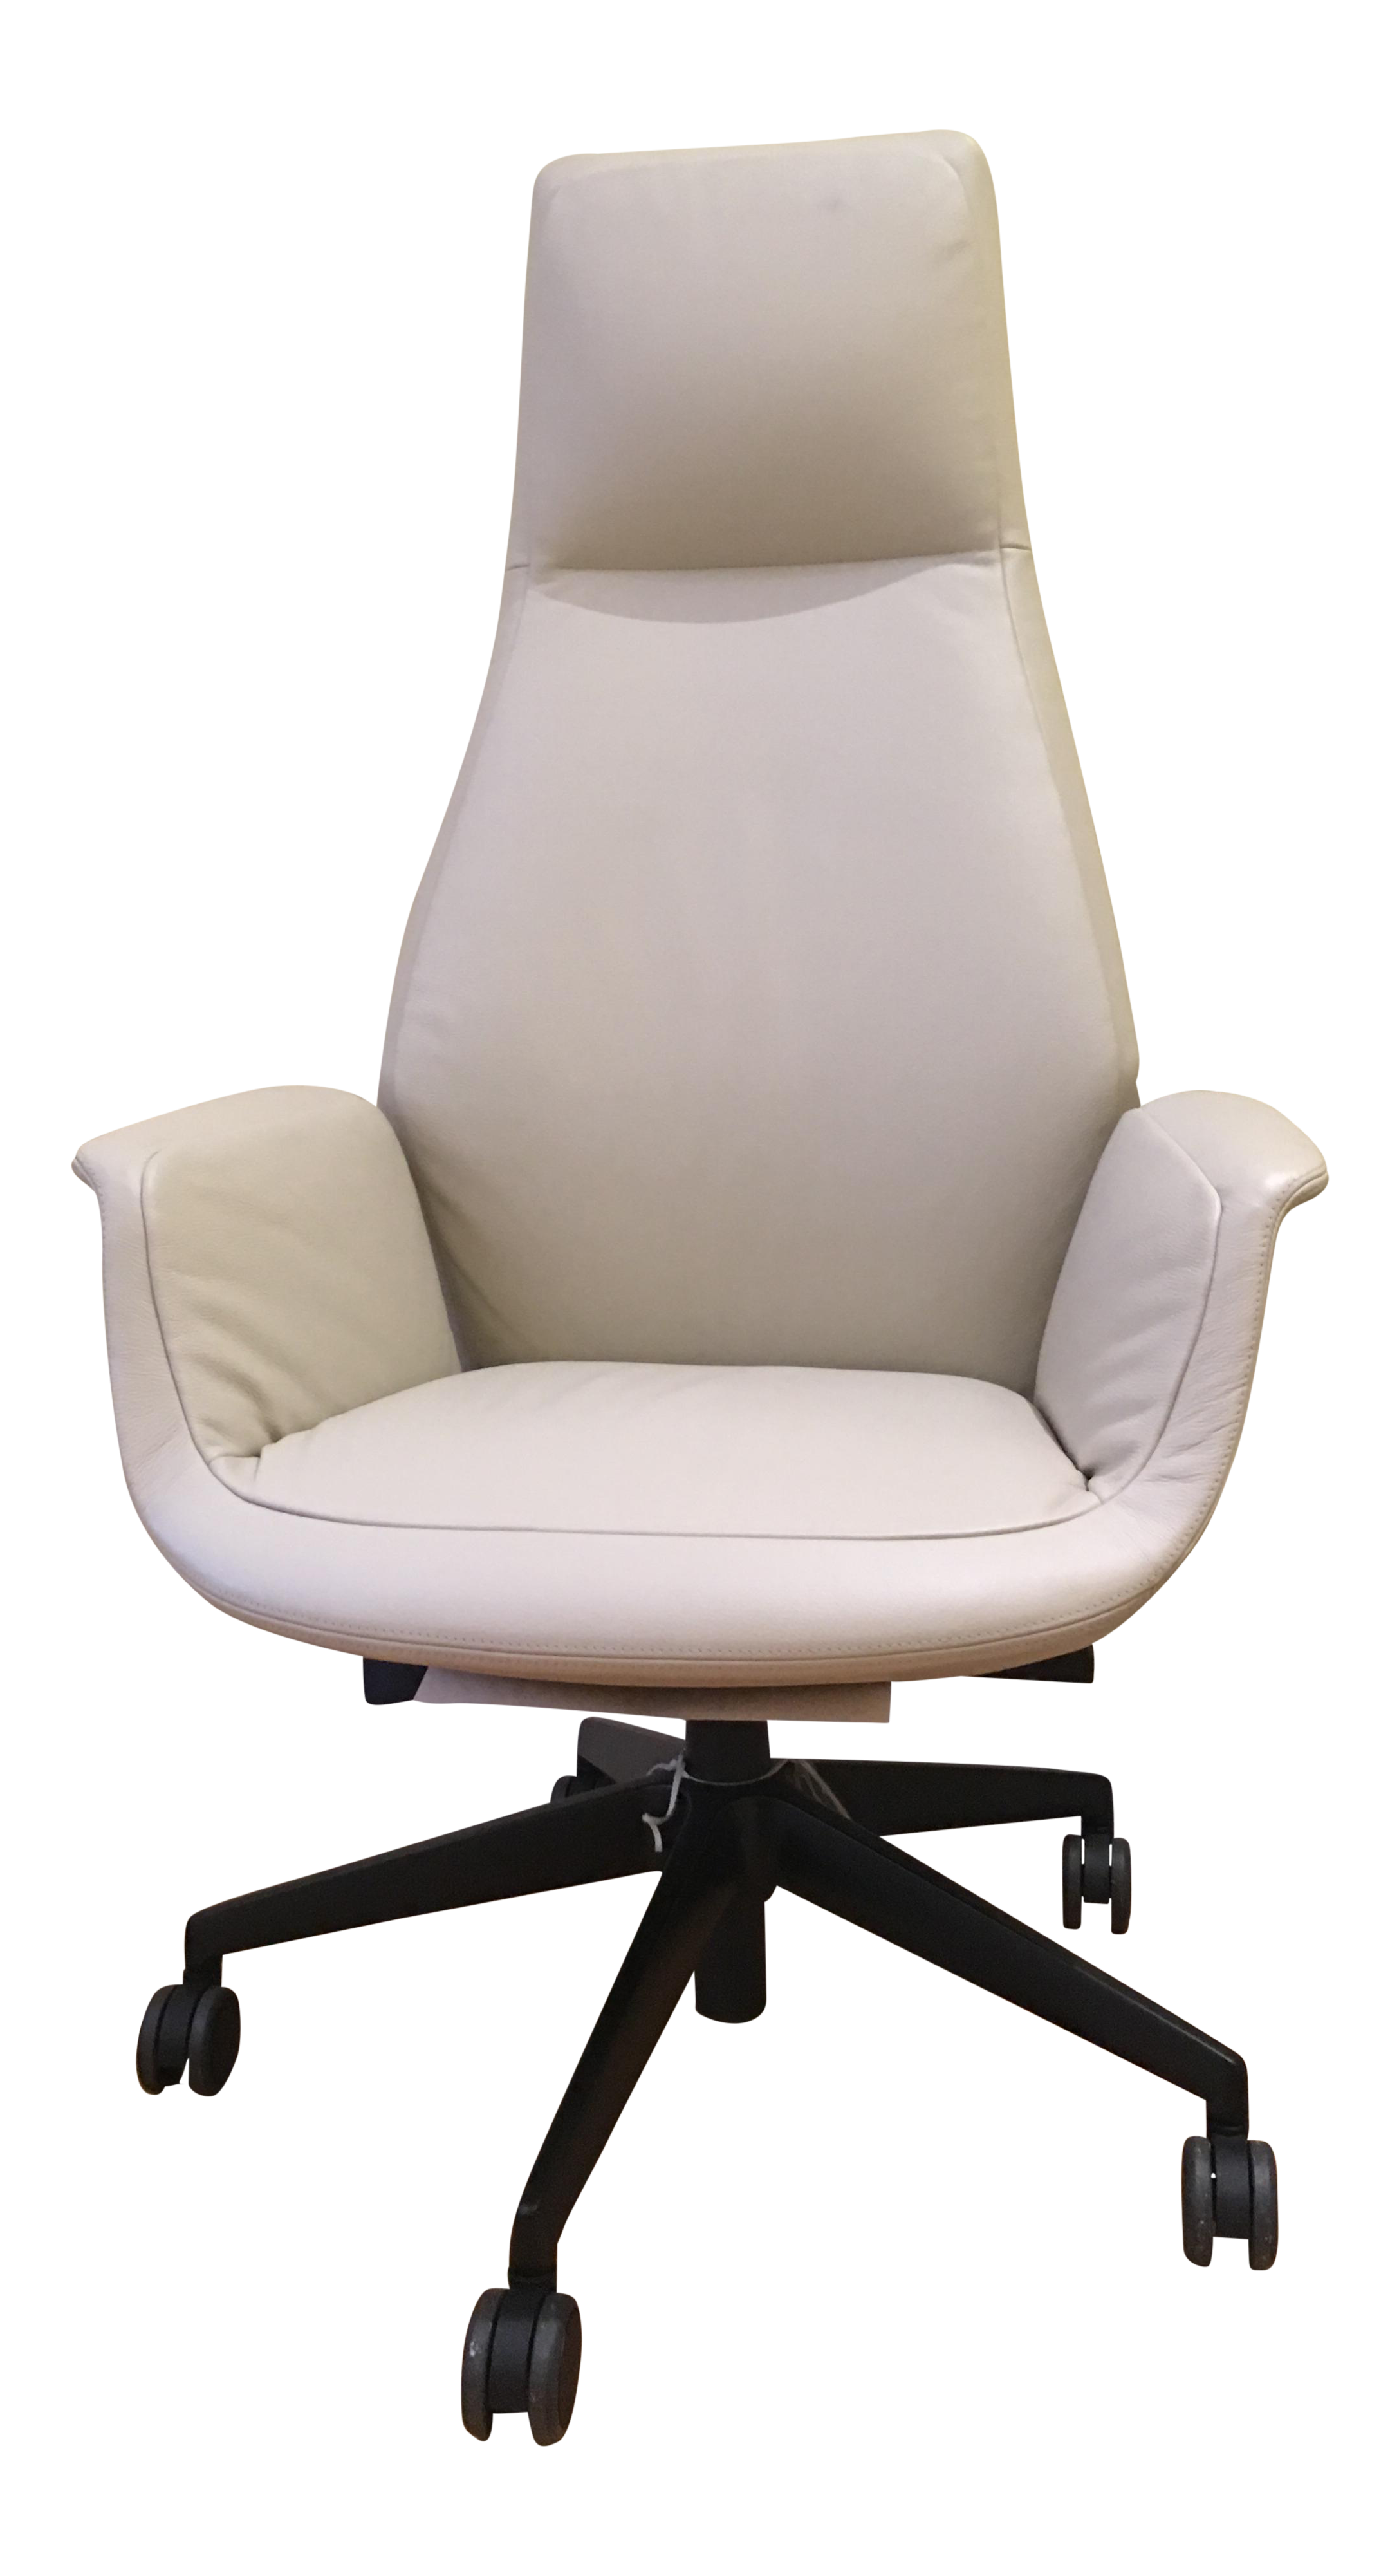 Presidential office chair Luxury Office Boulevard Home Furnishings Downtown President Office Chair Chairish